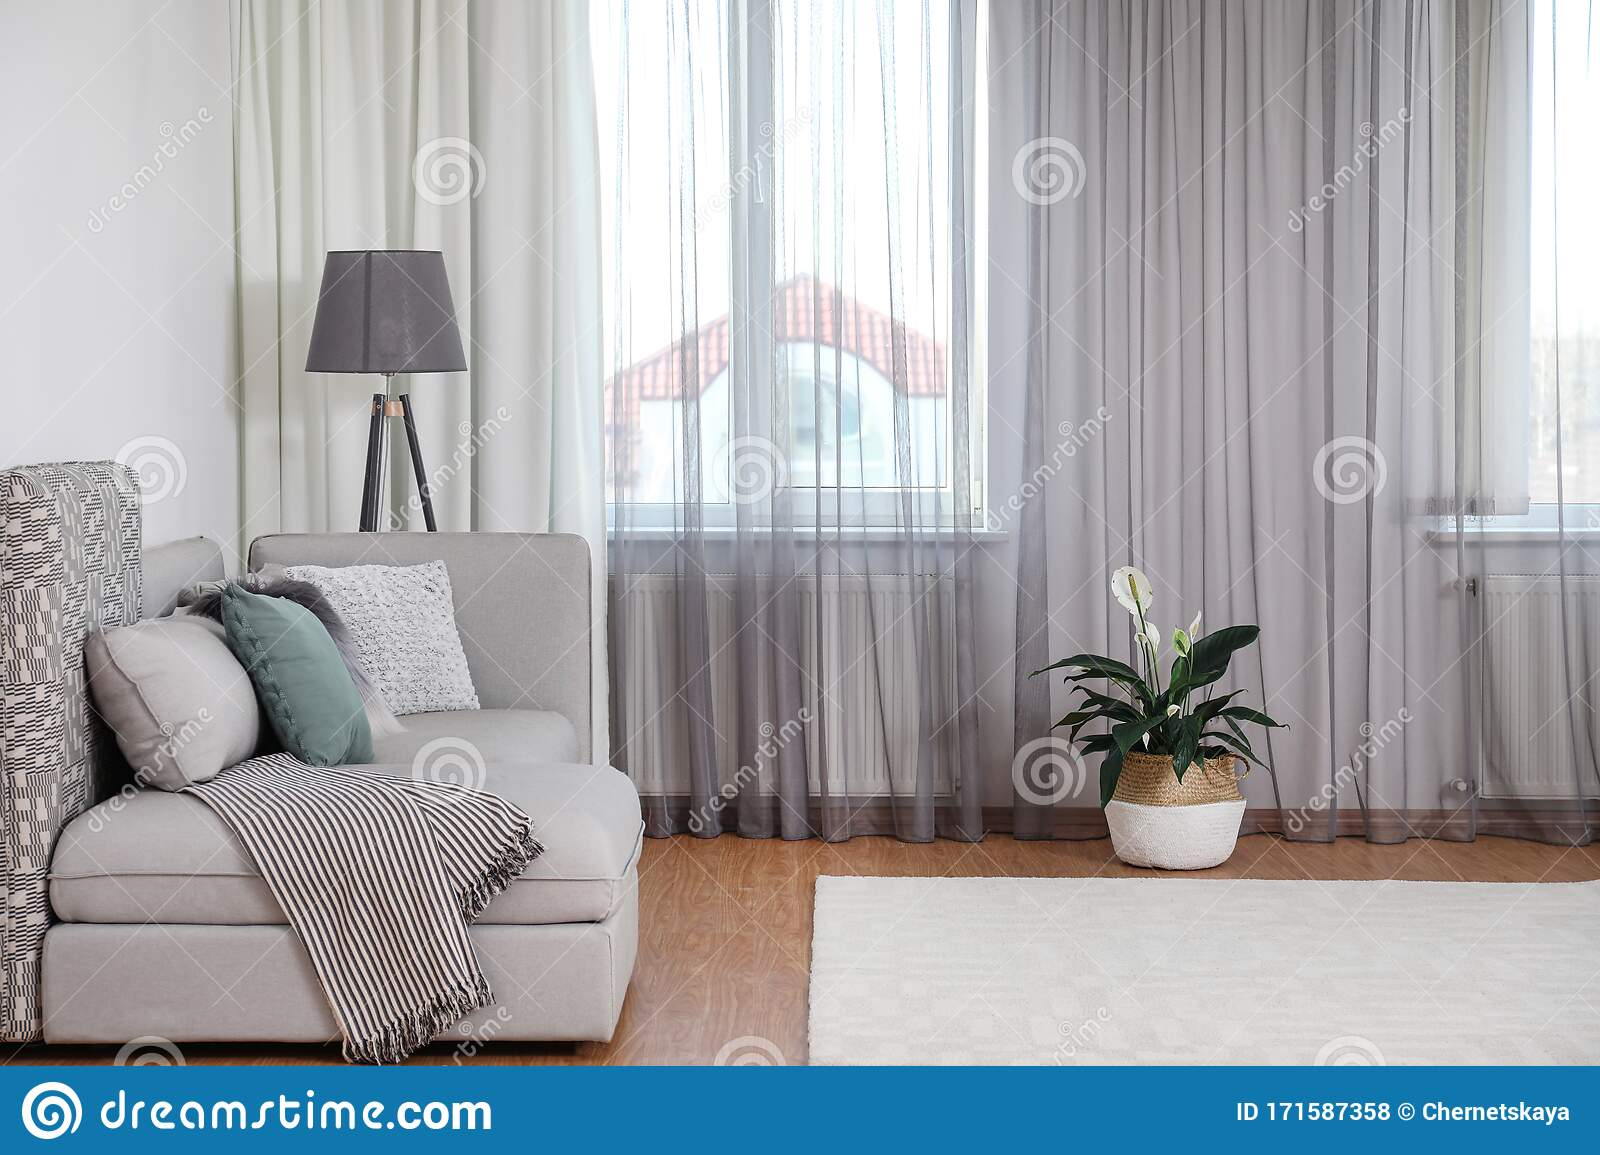 Window With Stylish Curtains In Living Room Stock Photo Image Of Modern House 171587358